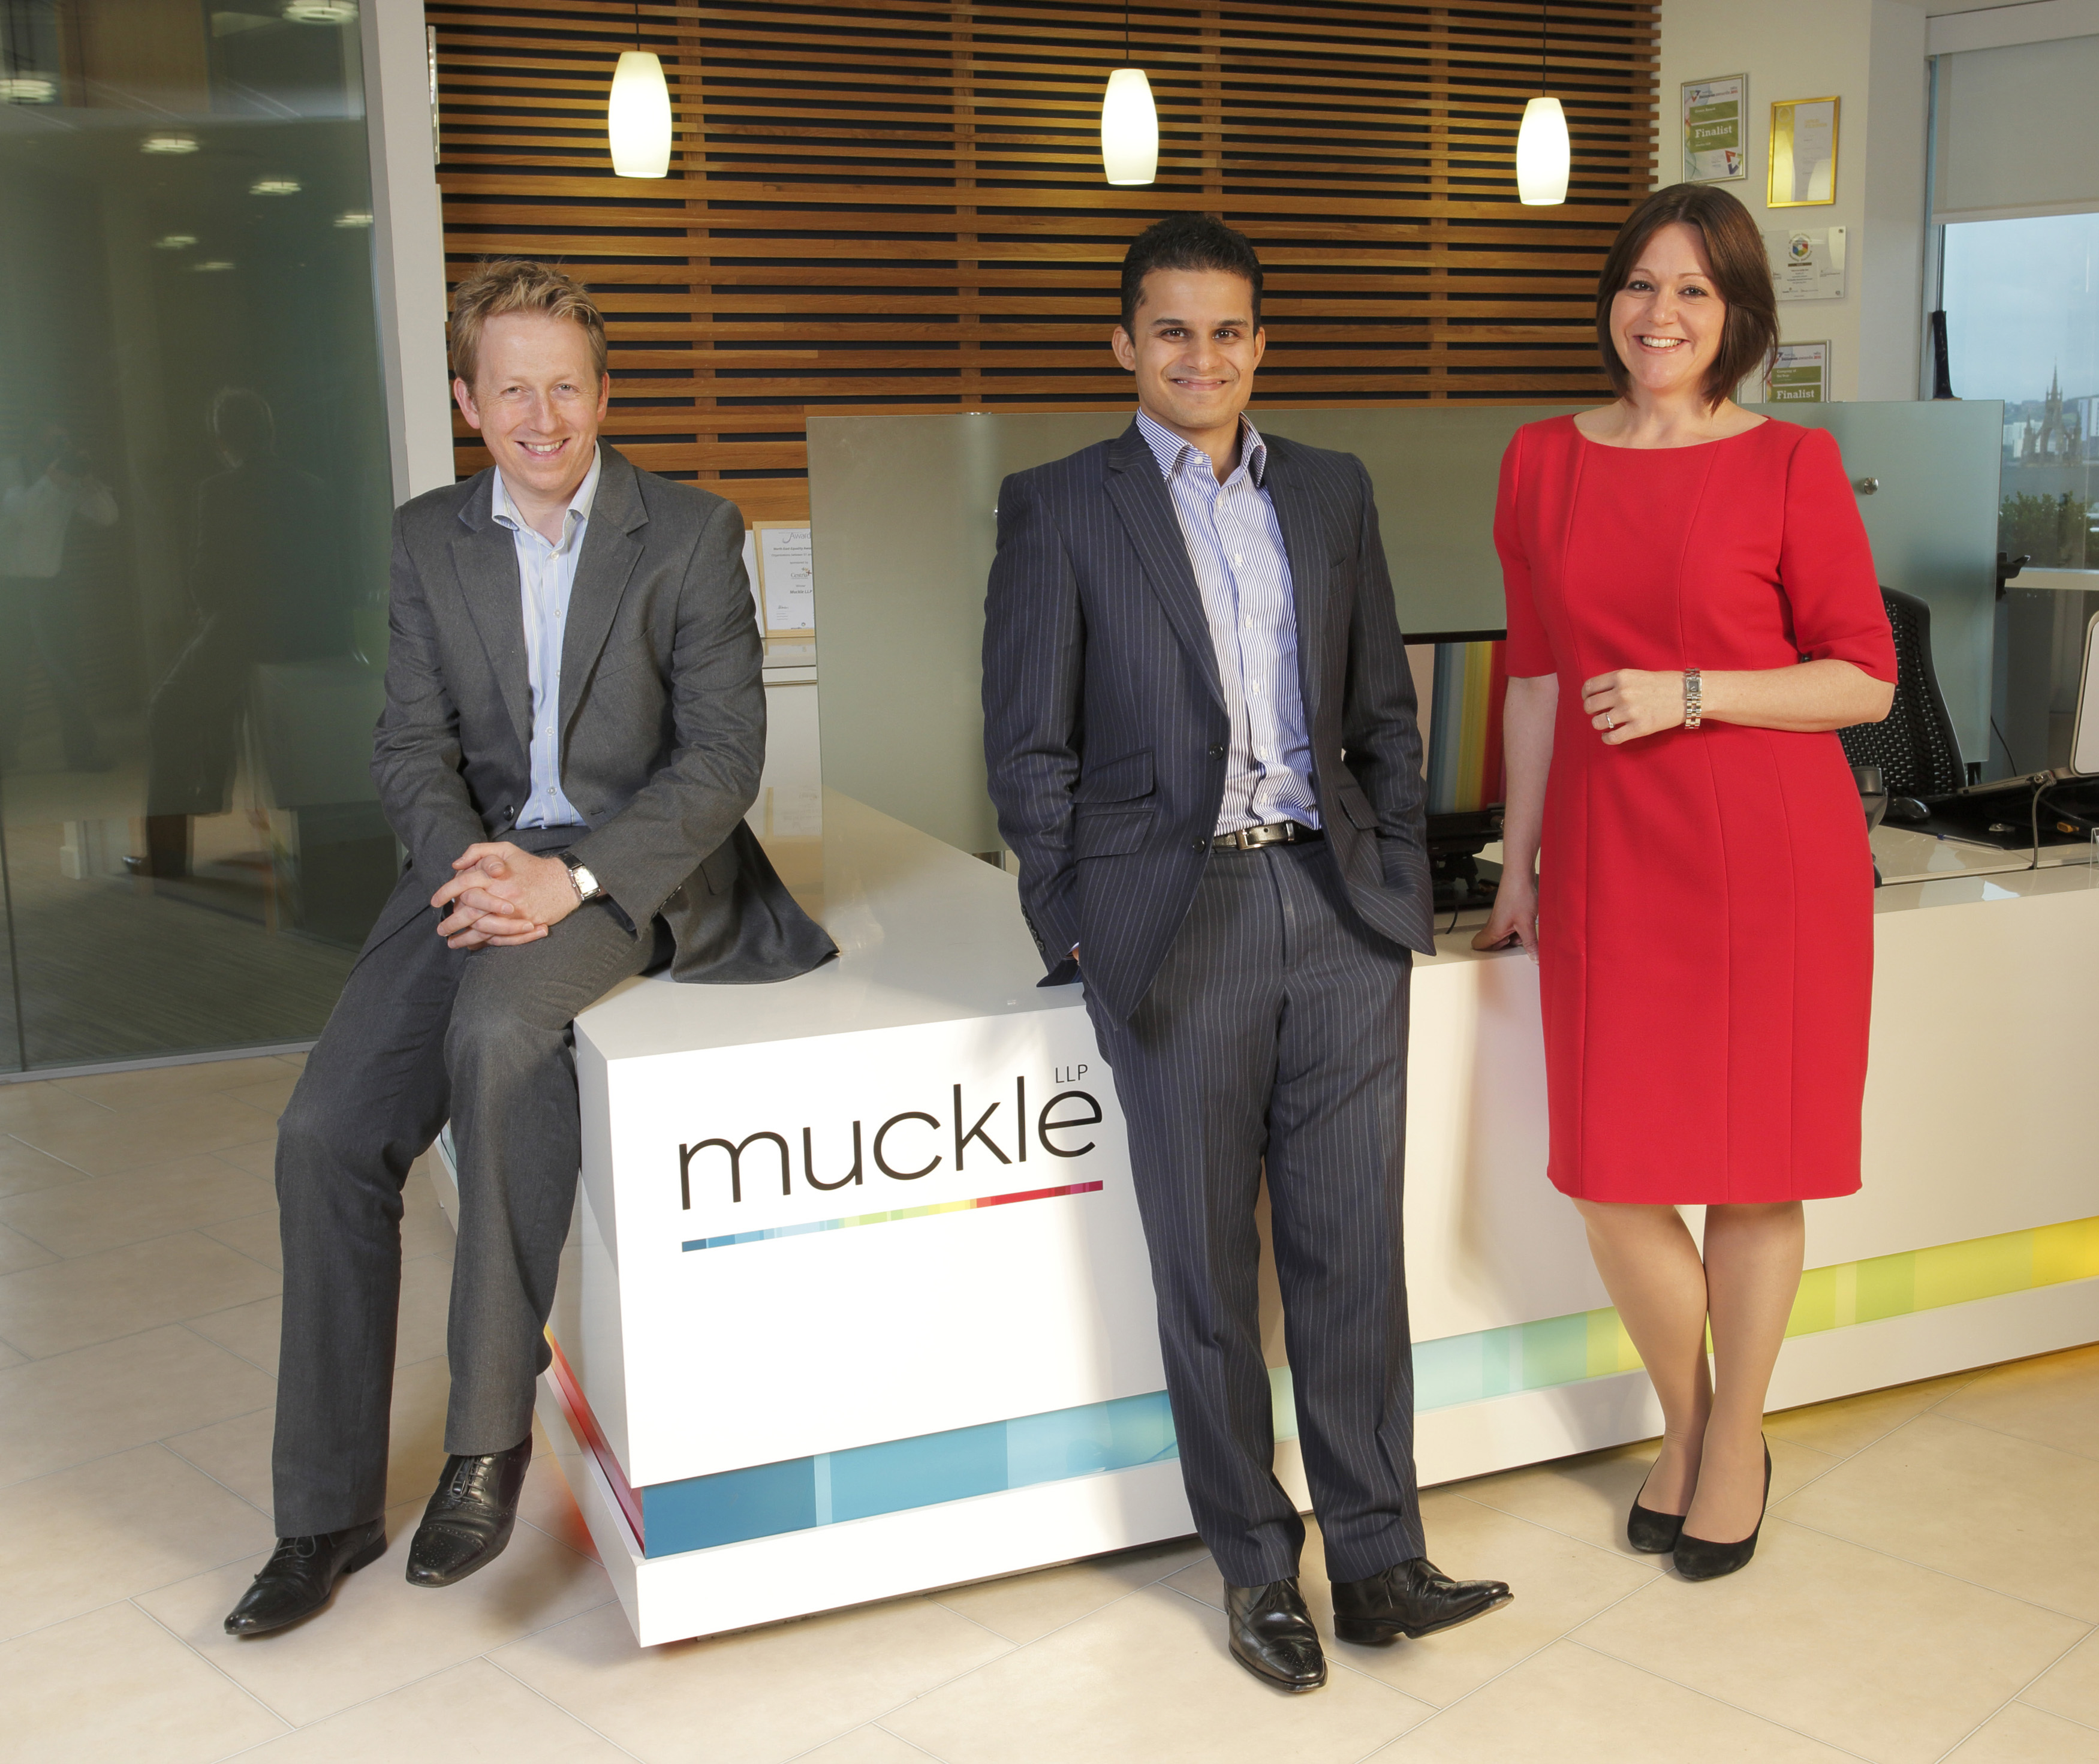 Andrew Cawkwell, Aman Sehgal and Kelly Jordan of Muckle LLP